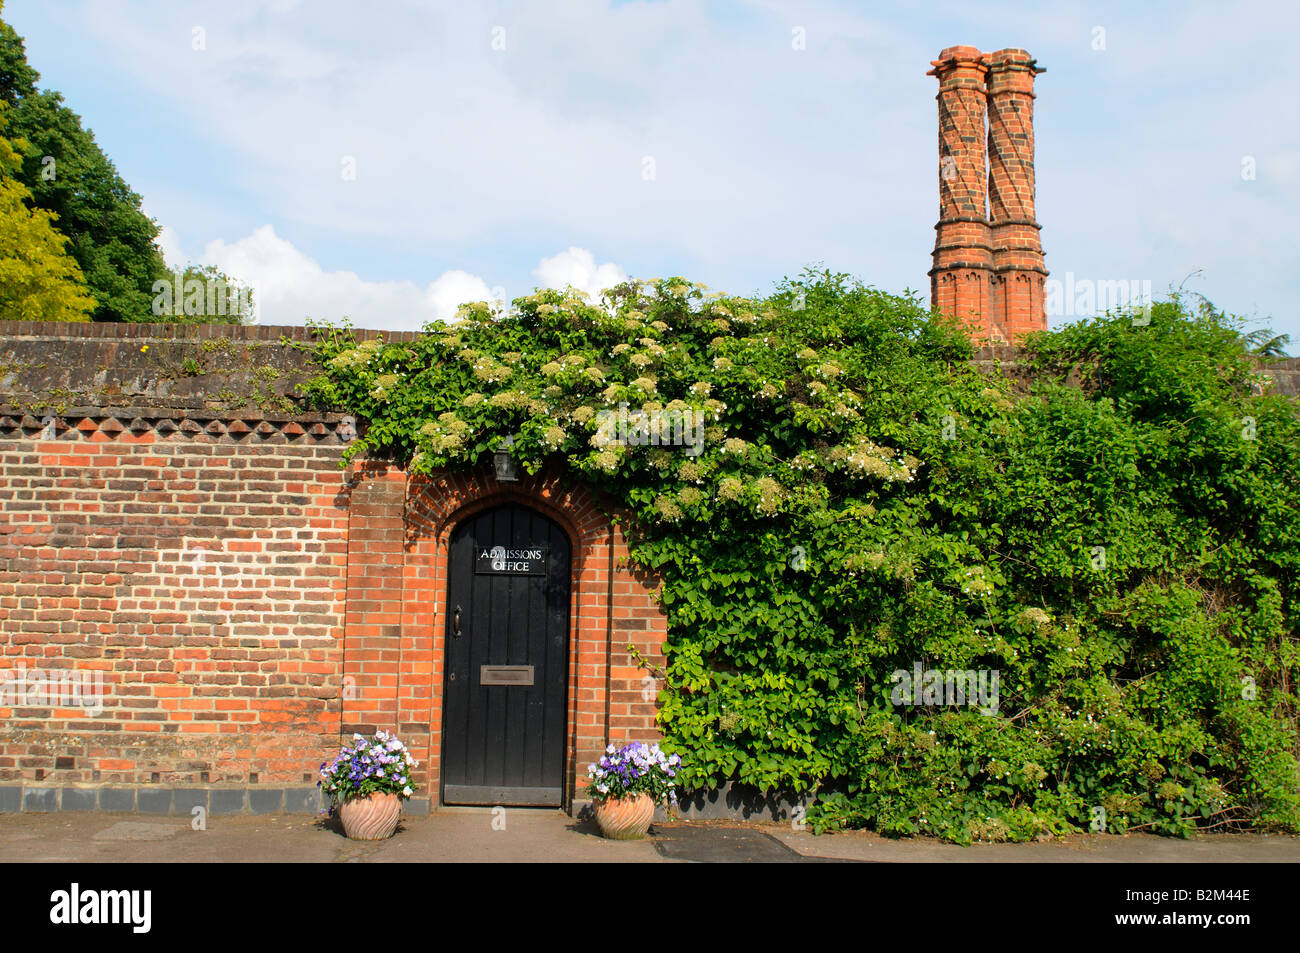 Eton College , The entrance door of the Admissions Office , Berkshire , England , UK - Stock Image